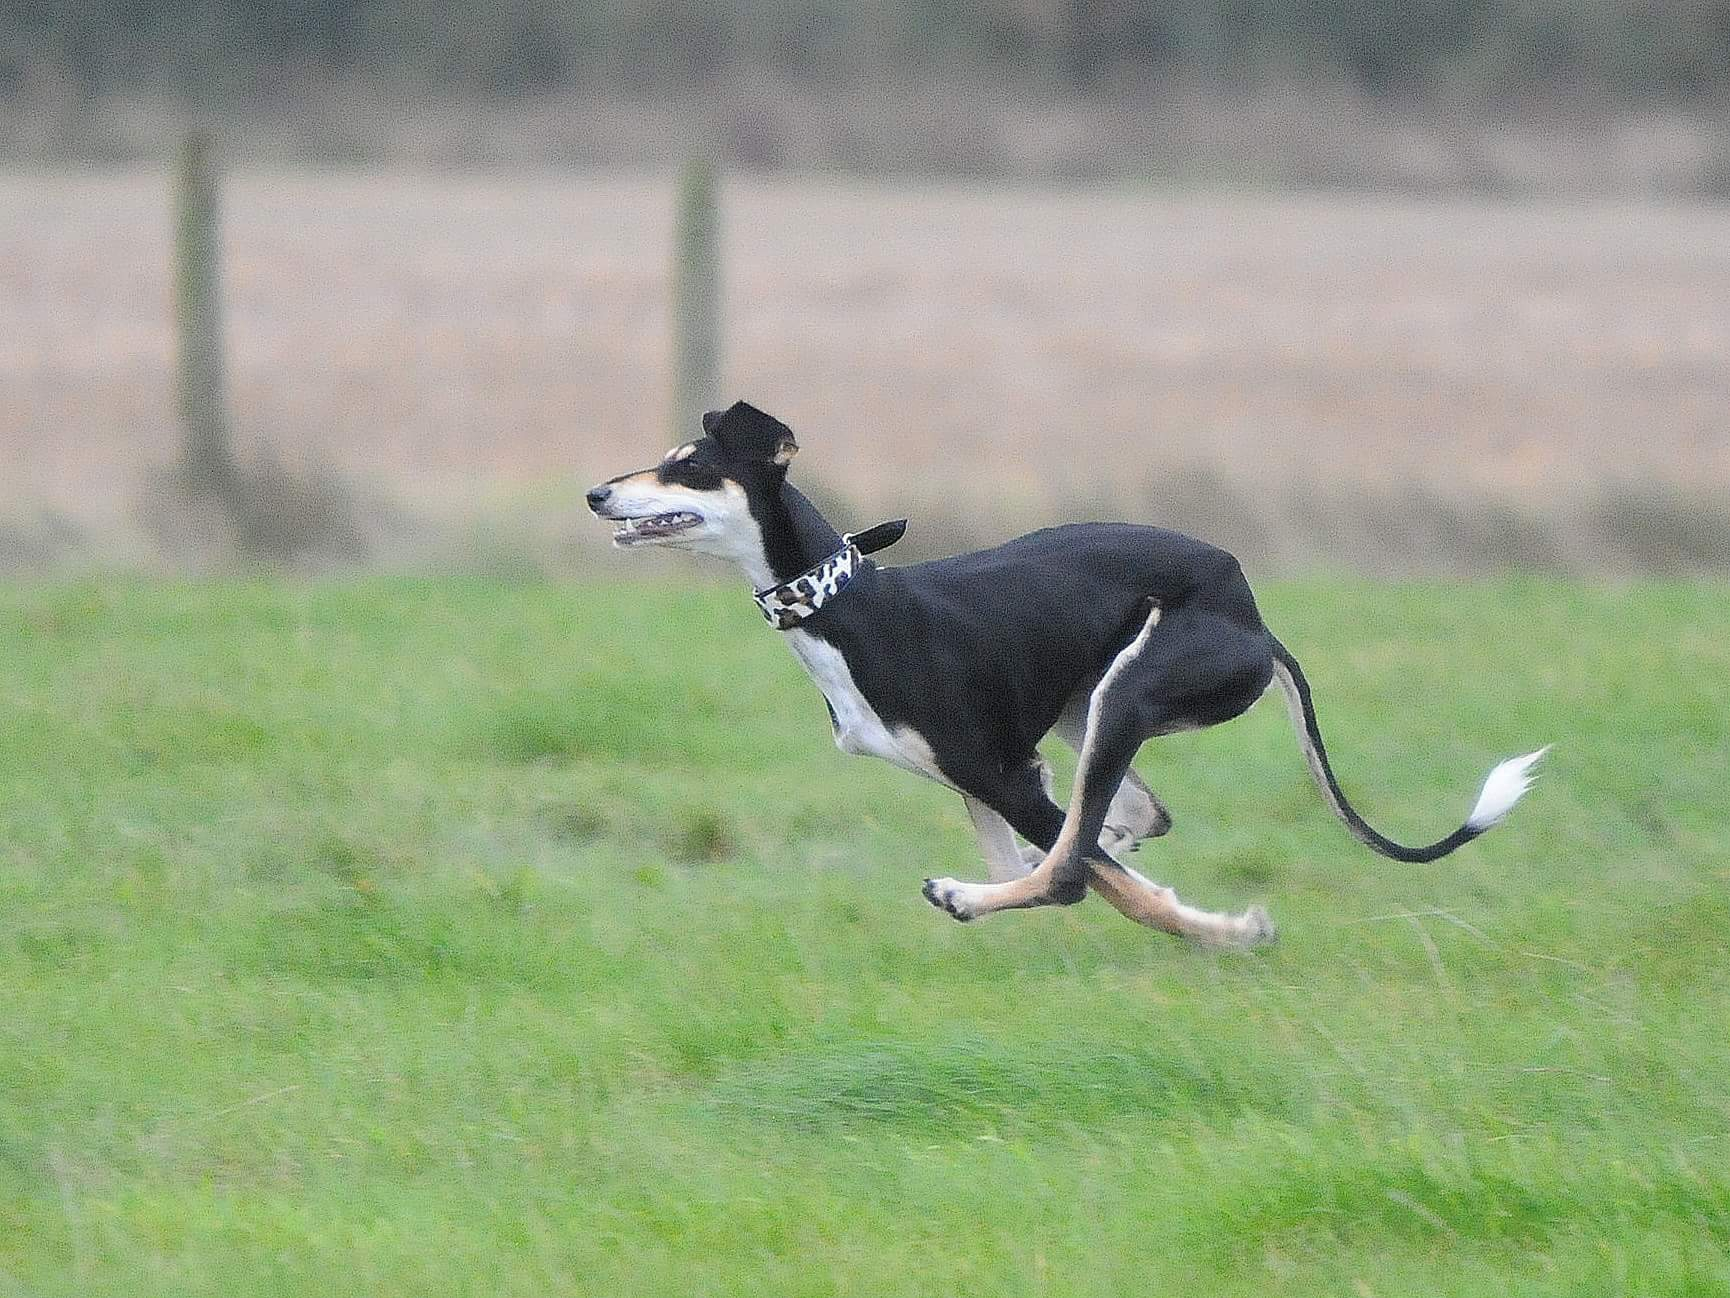 About Dog Moda - Soft padded hound collars, leather dog leads, dog accessories designed with style for whippets, lurchers, Afghans, greyhounds and other sighthounds